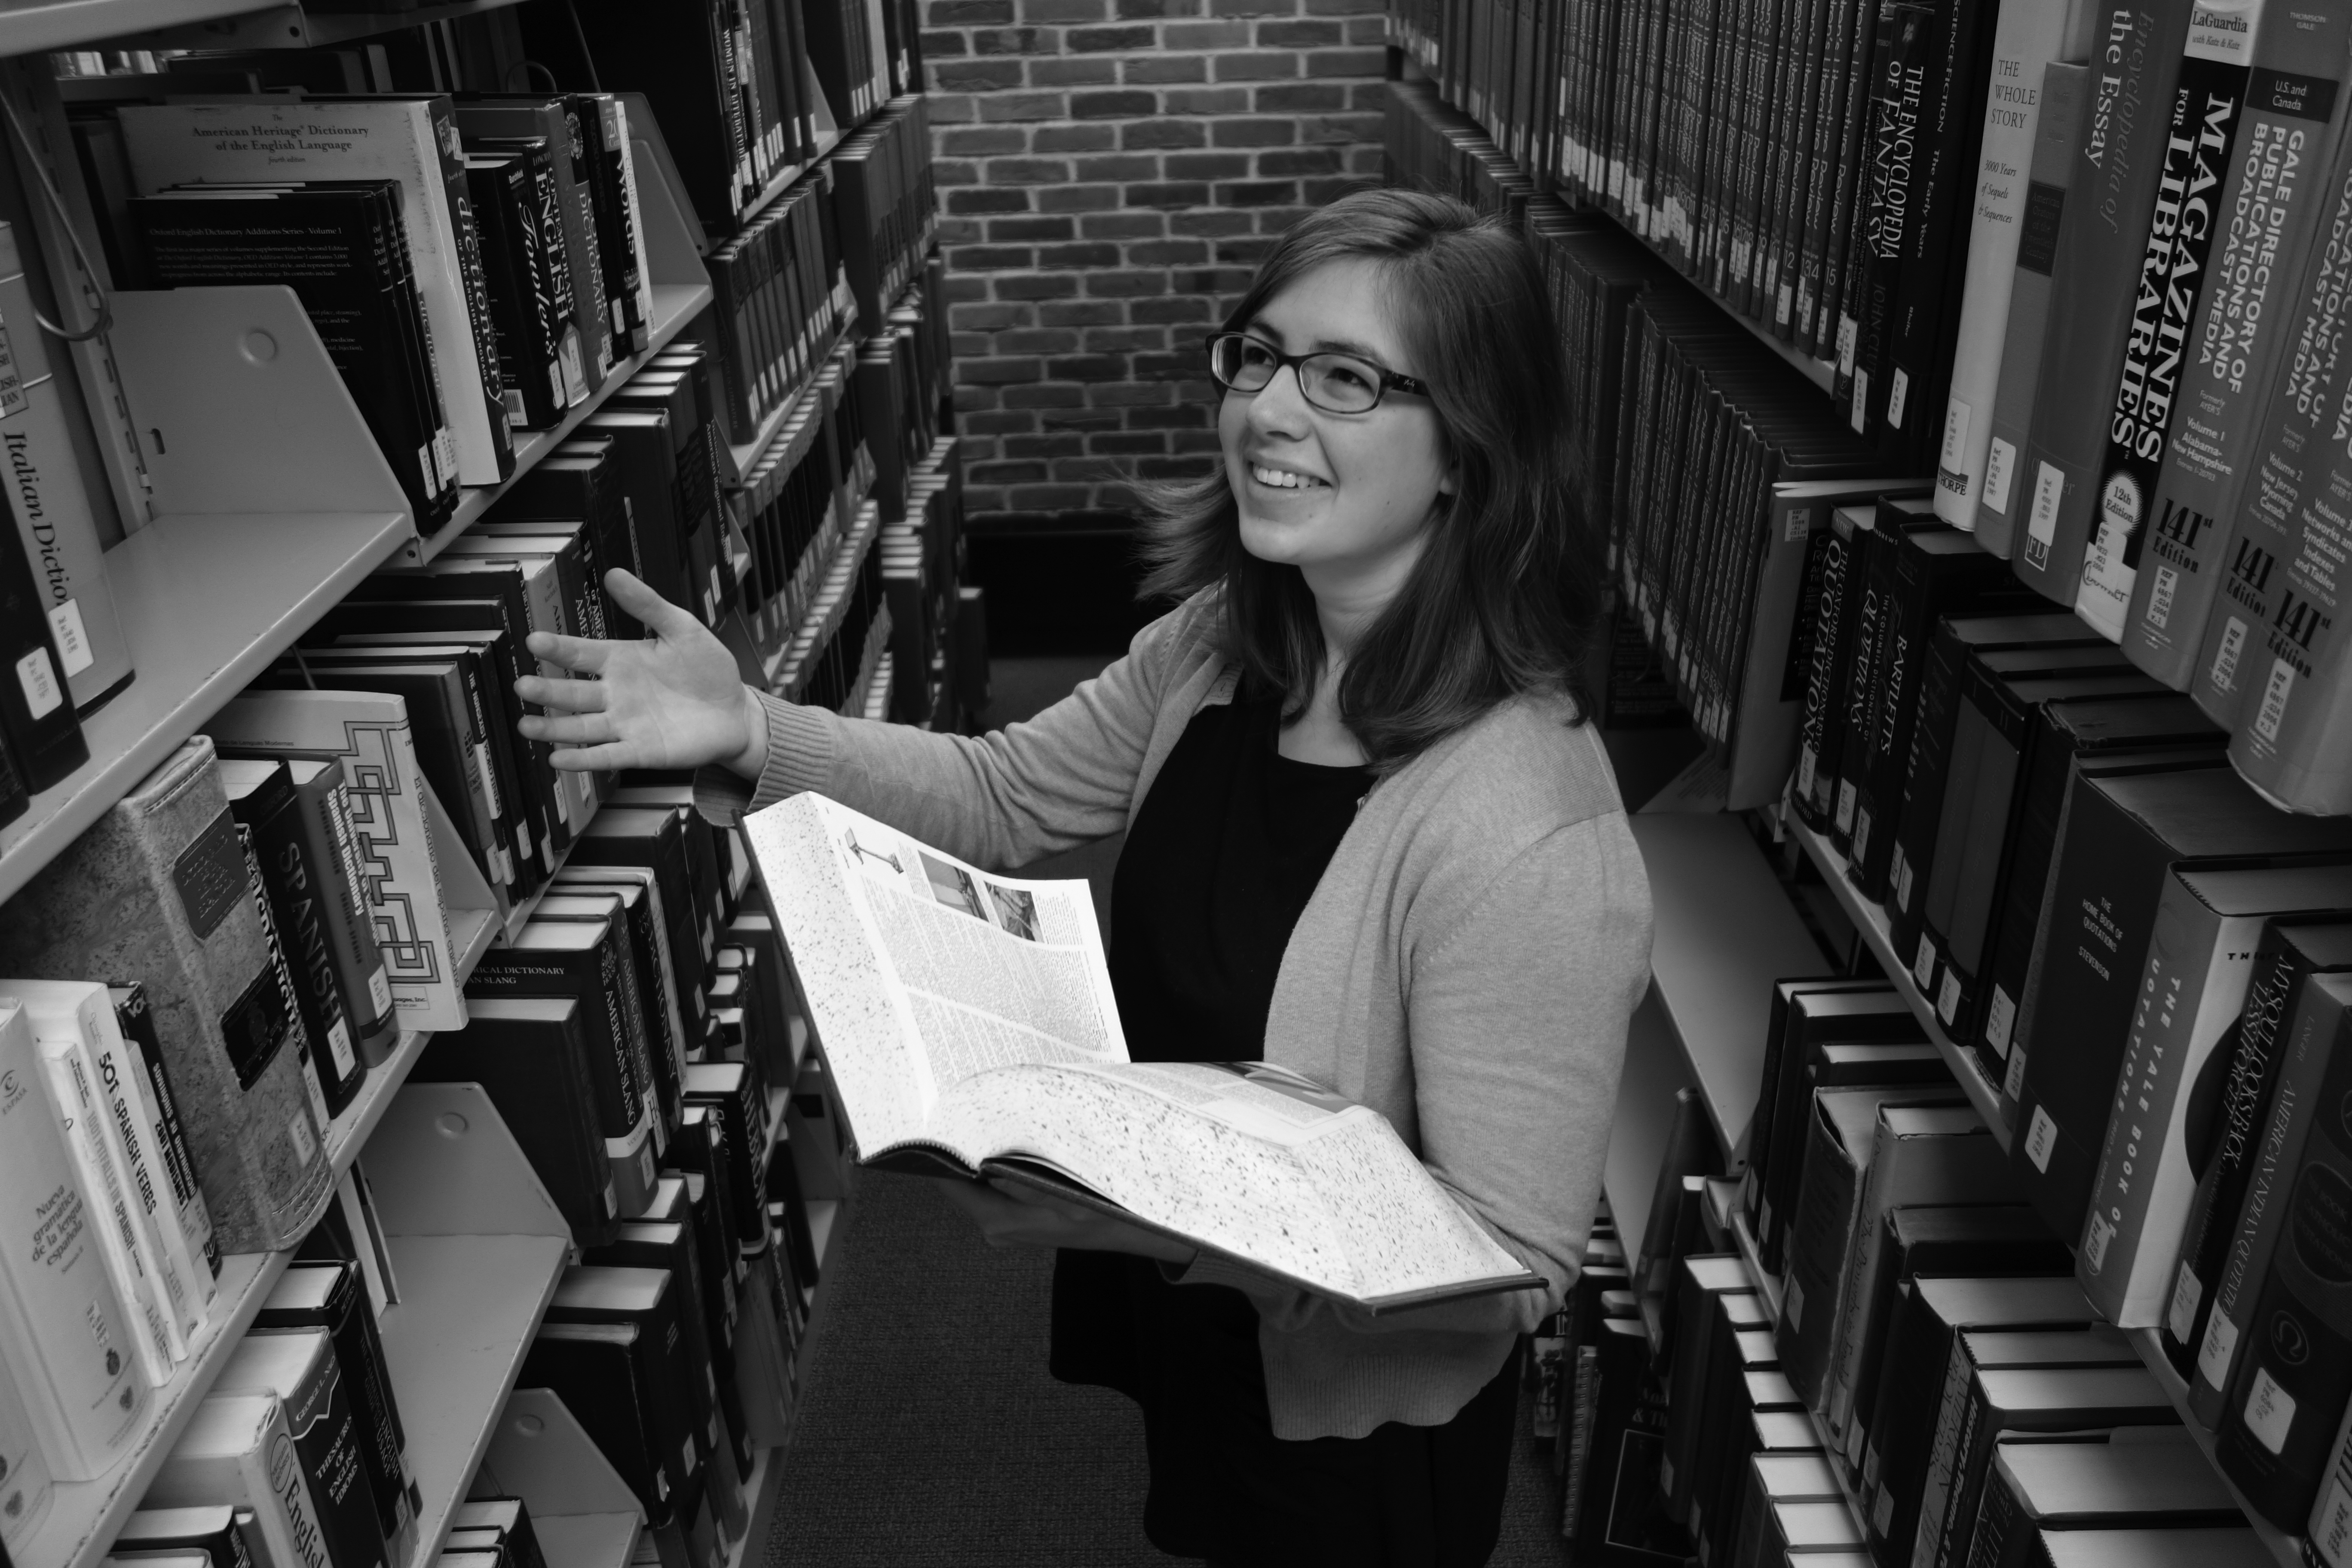 Kate Yoder holds a book and laughs in the Good Library